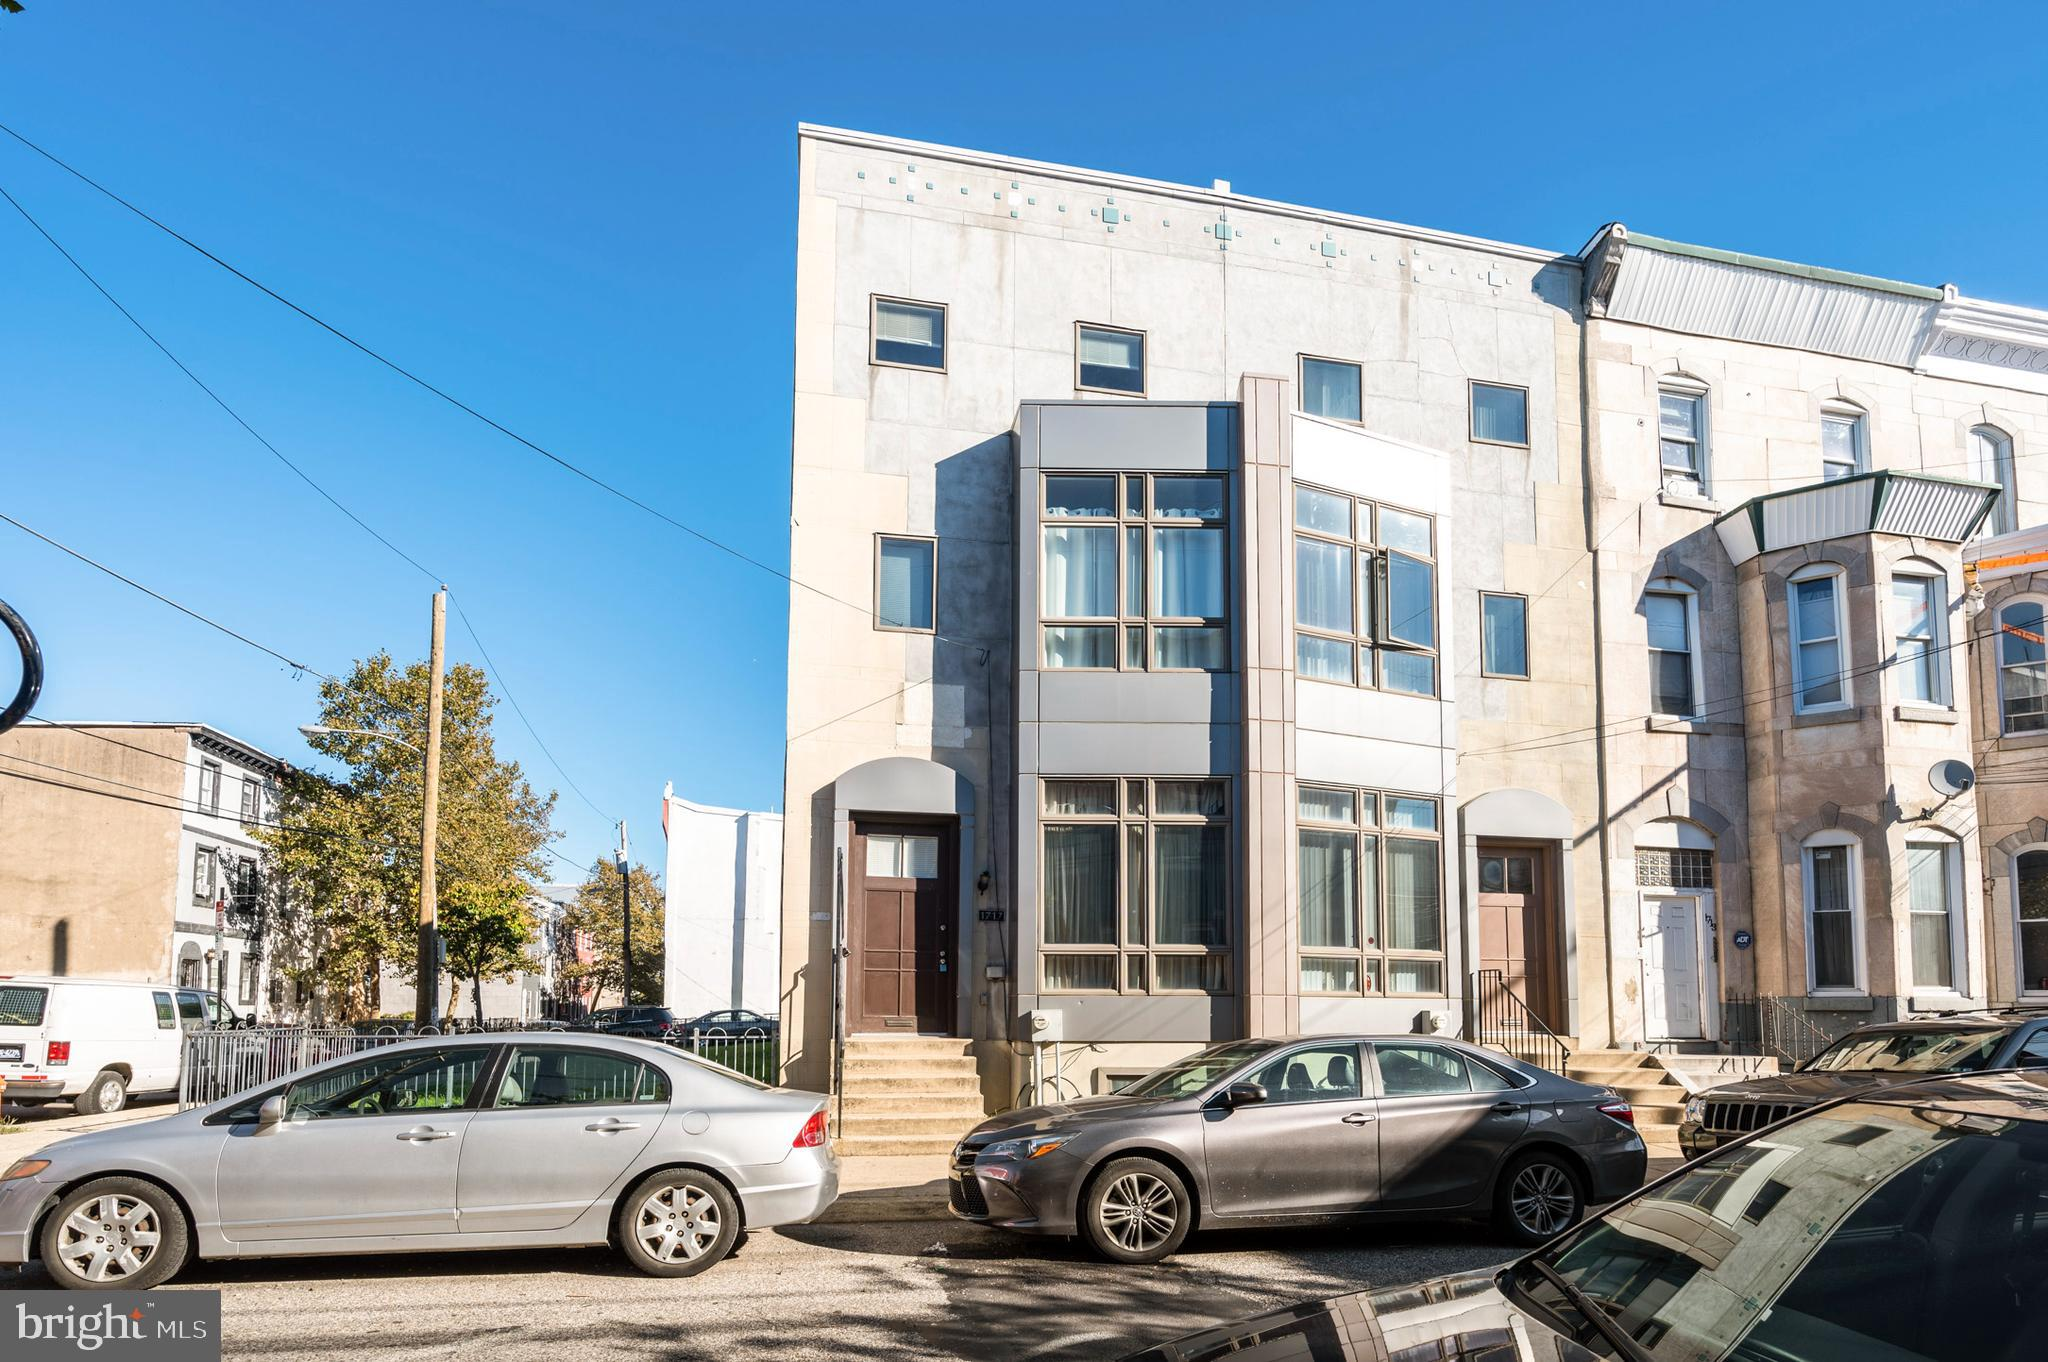 3-Story Townhouse In North Central